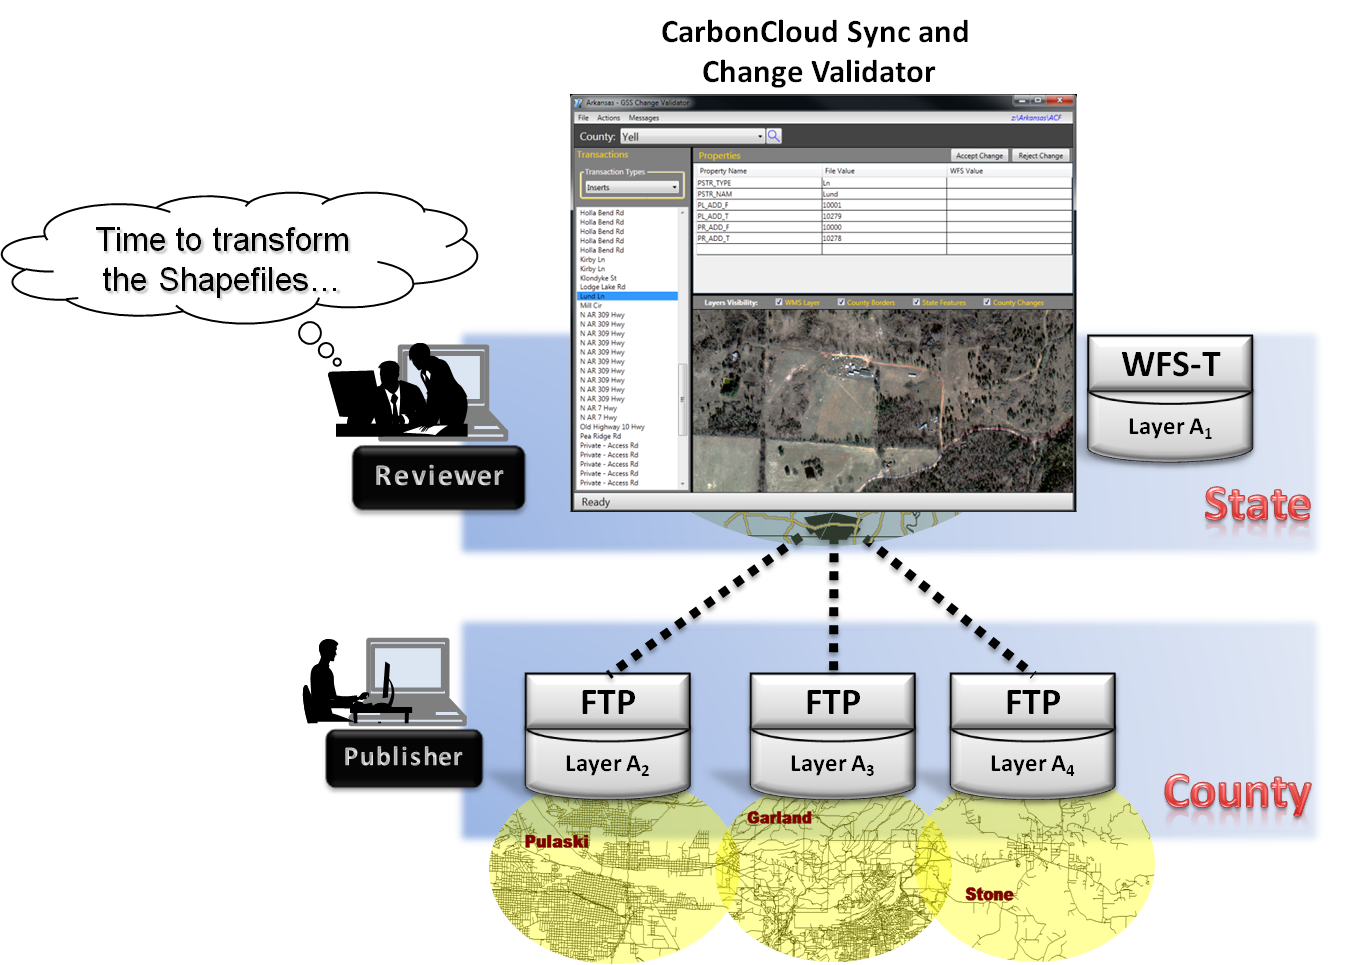 CarbonCloud®: From Shapefiles to GeoSynchronization